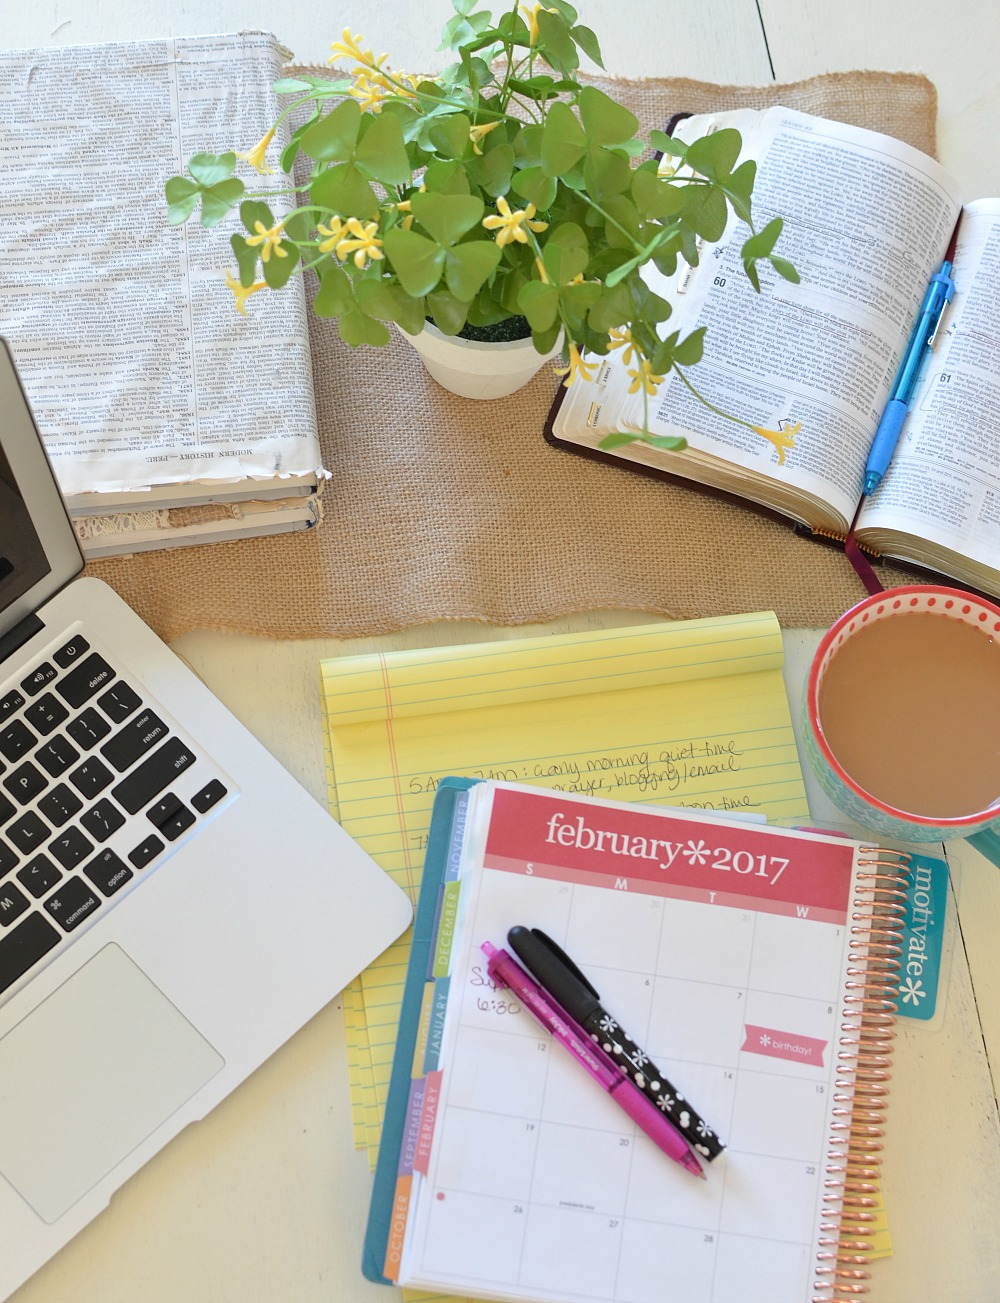 4 Amazing Time Management Tips for Moms. Simple ways to get more out of each day and live a life with less stress and more time.